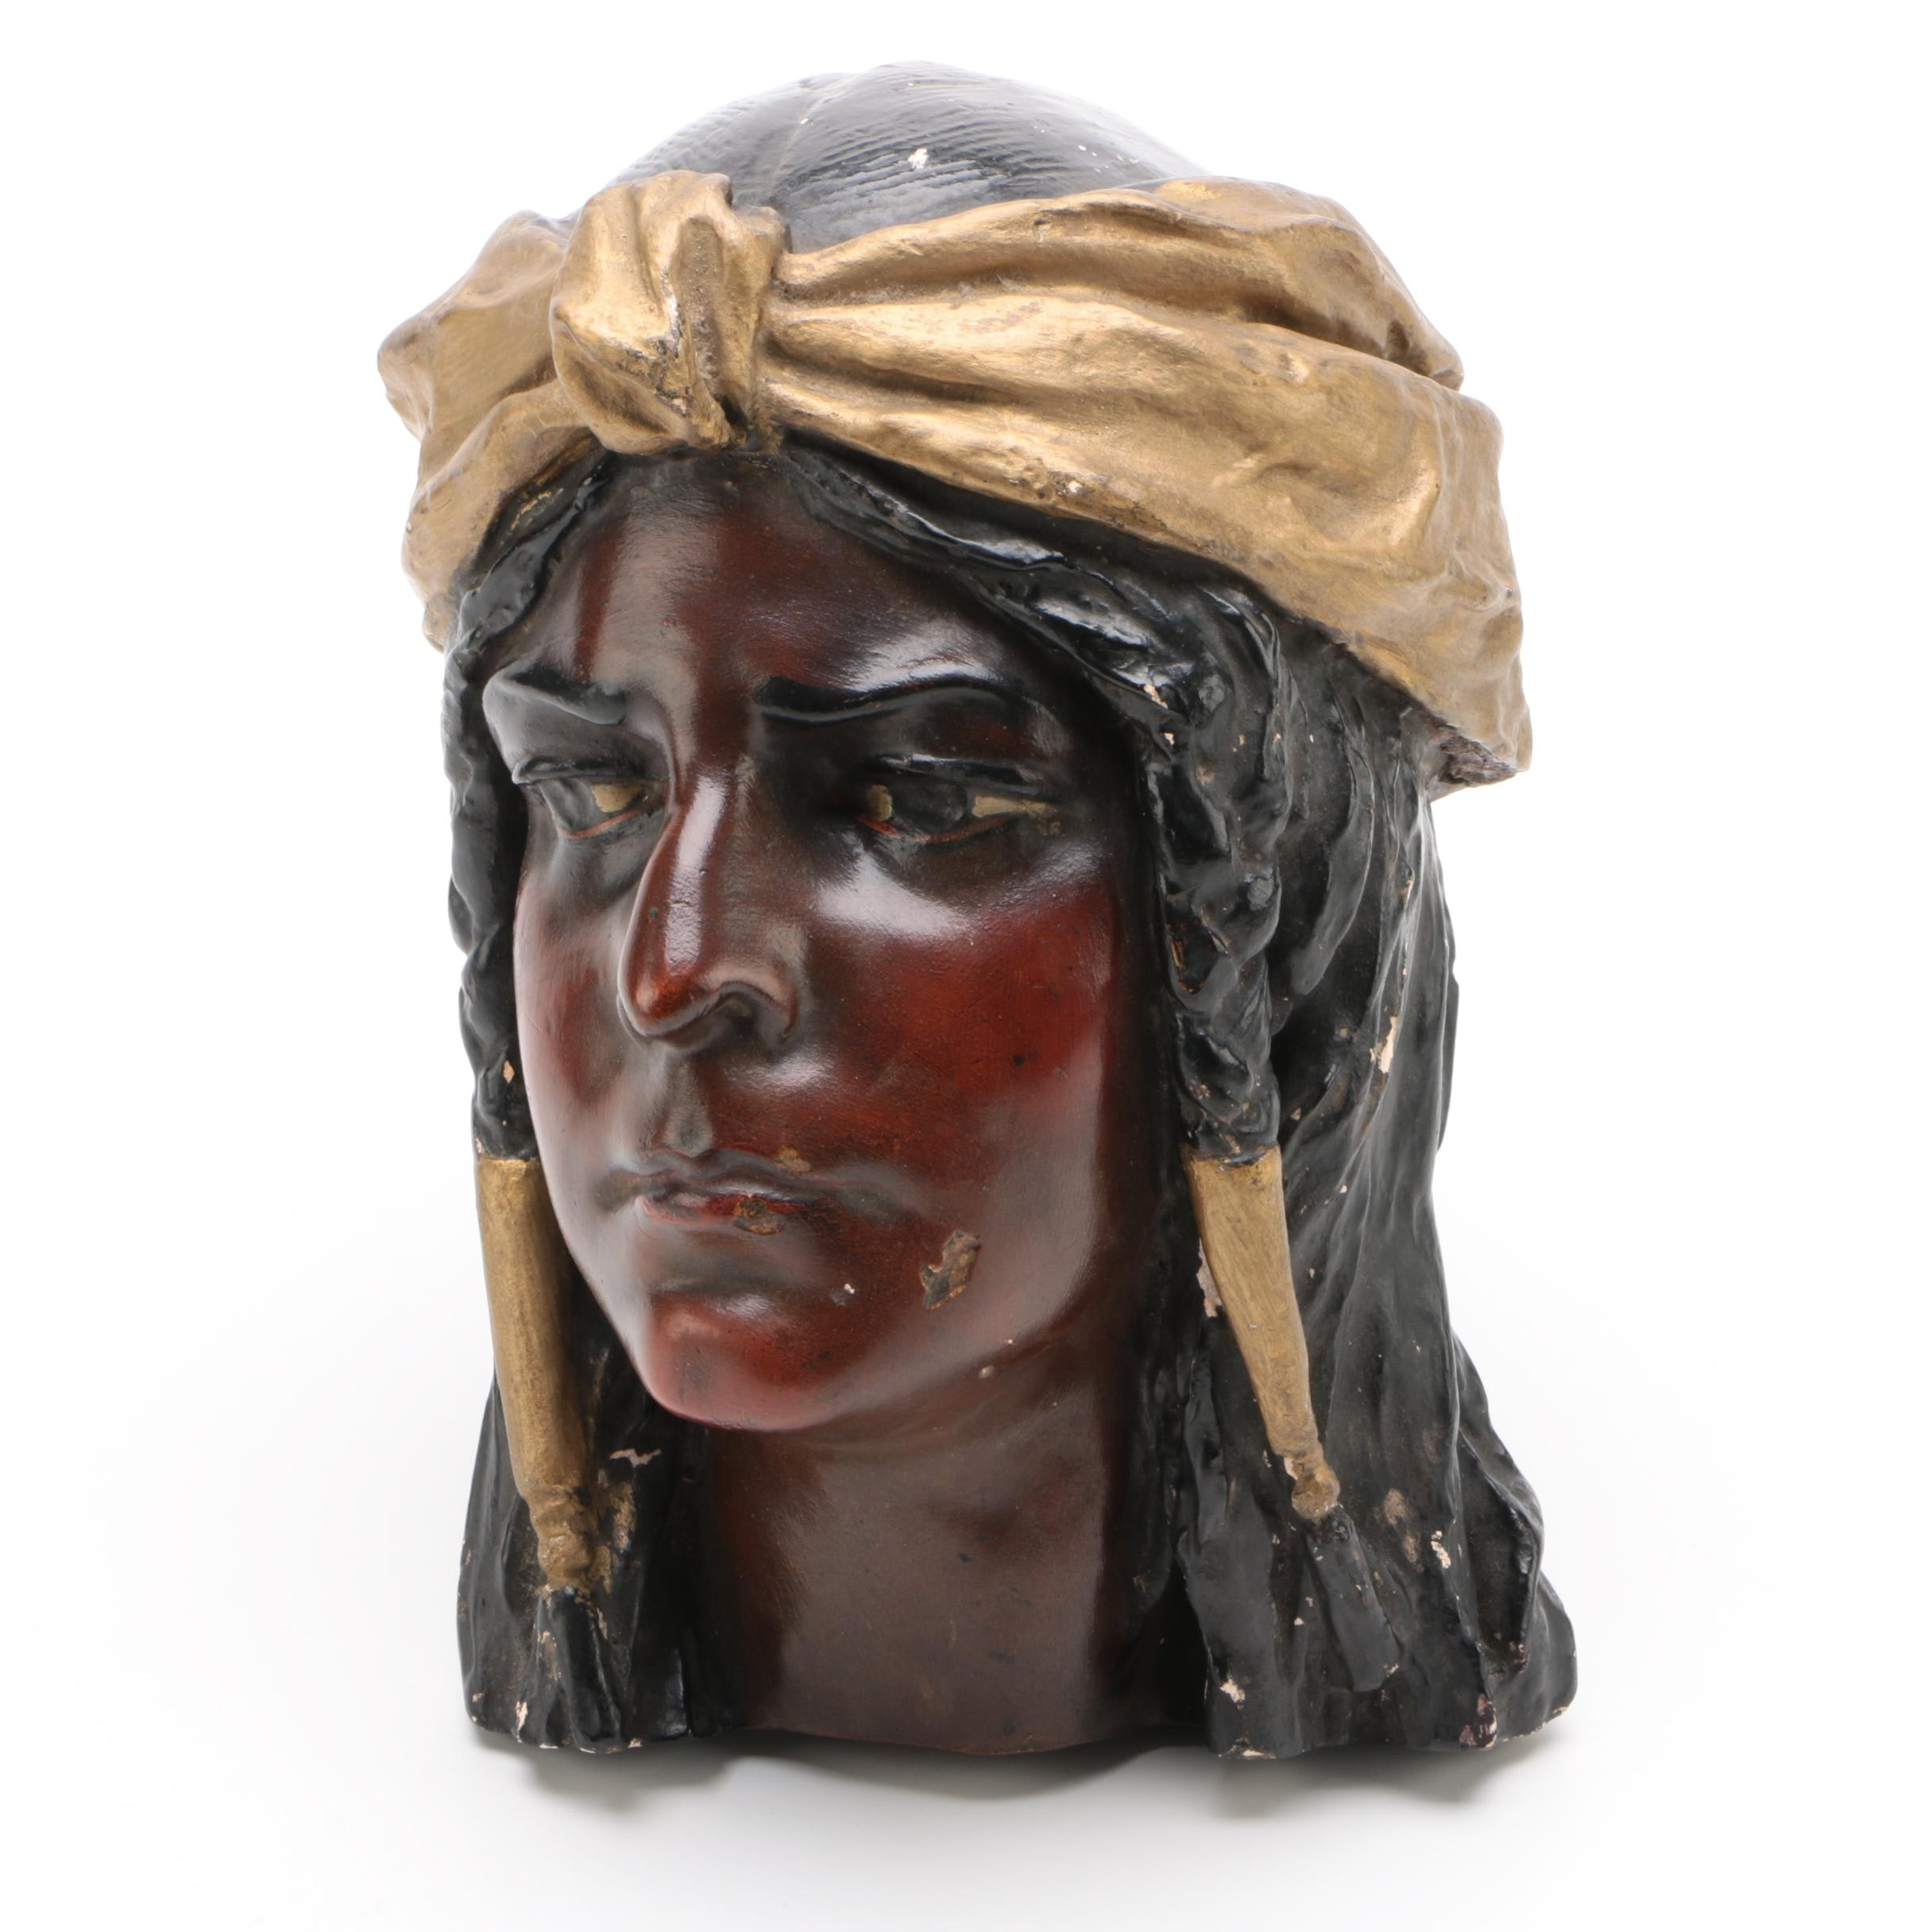 Plaster Head of a Native American Man, Vintage